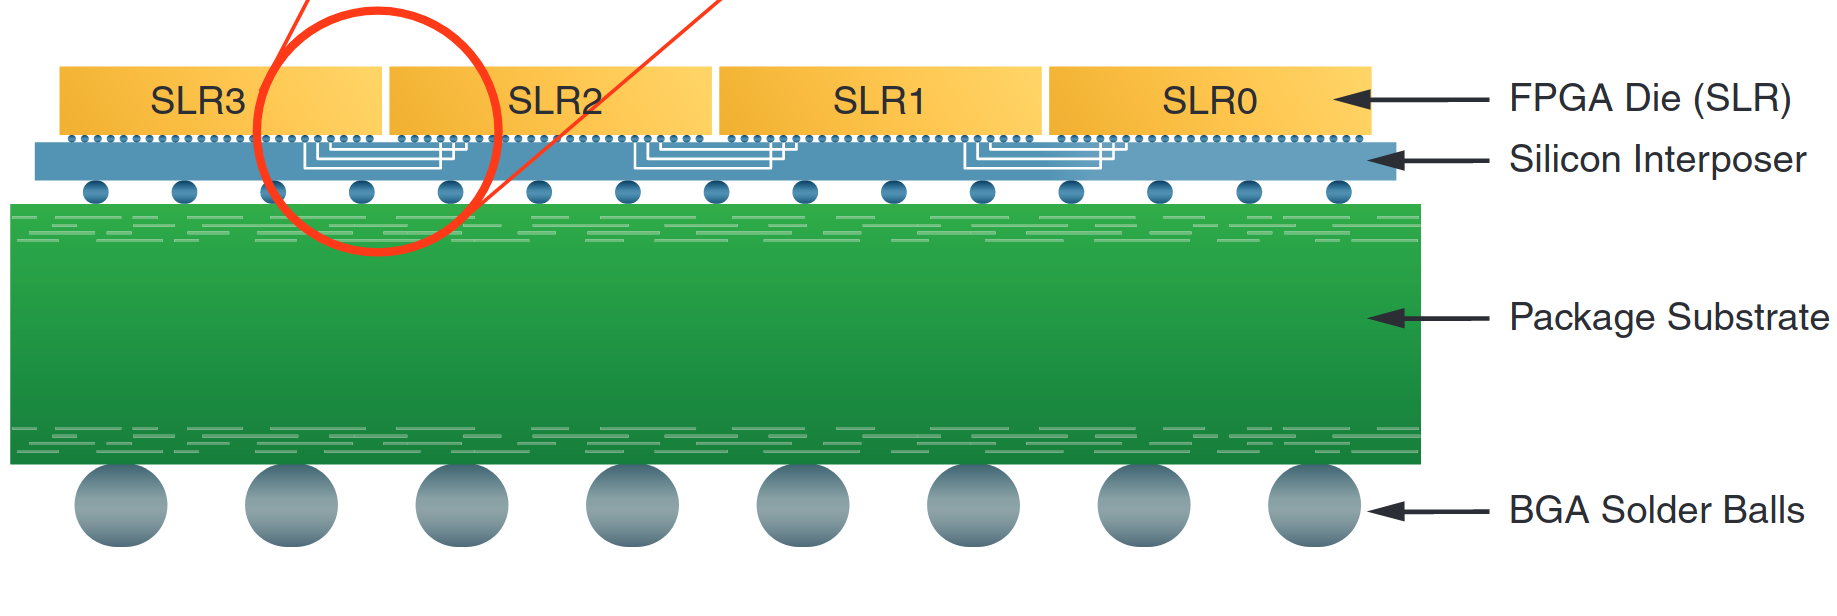 Xilinx SLR documentation